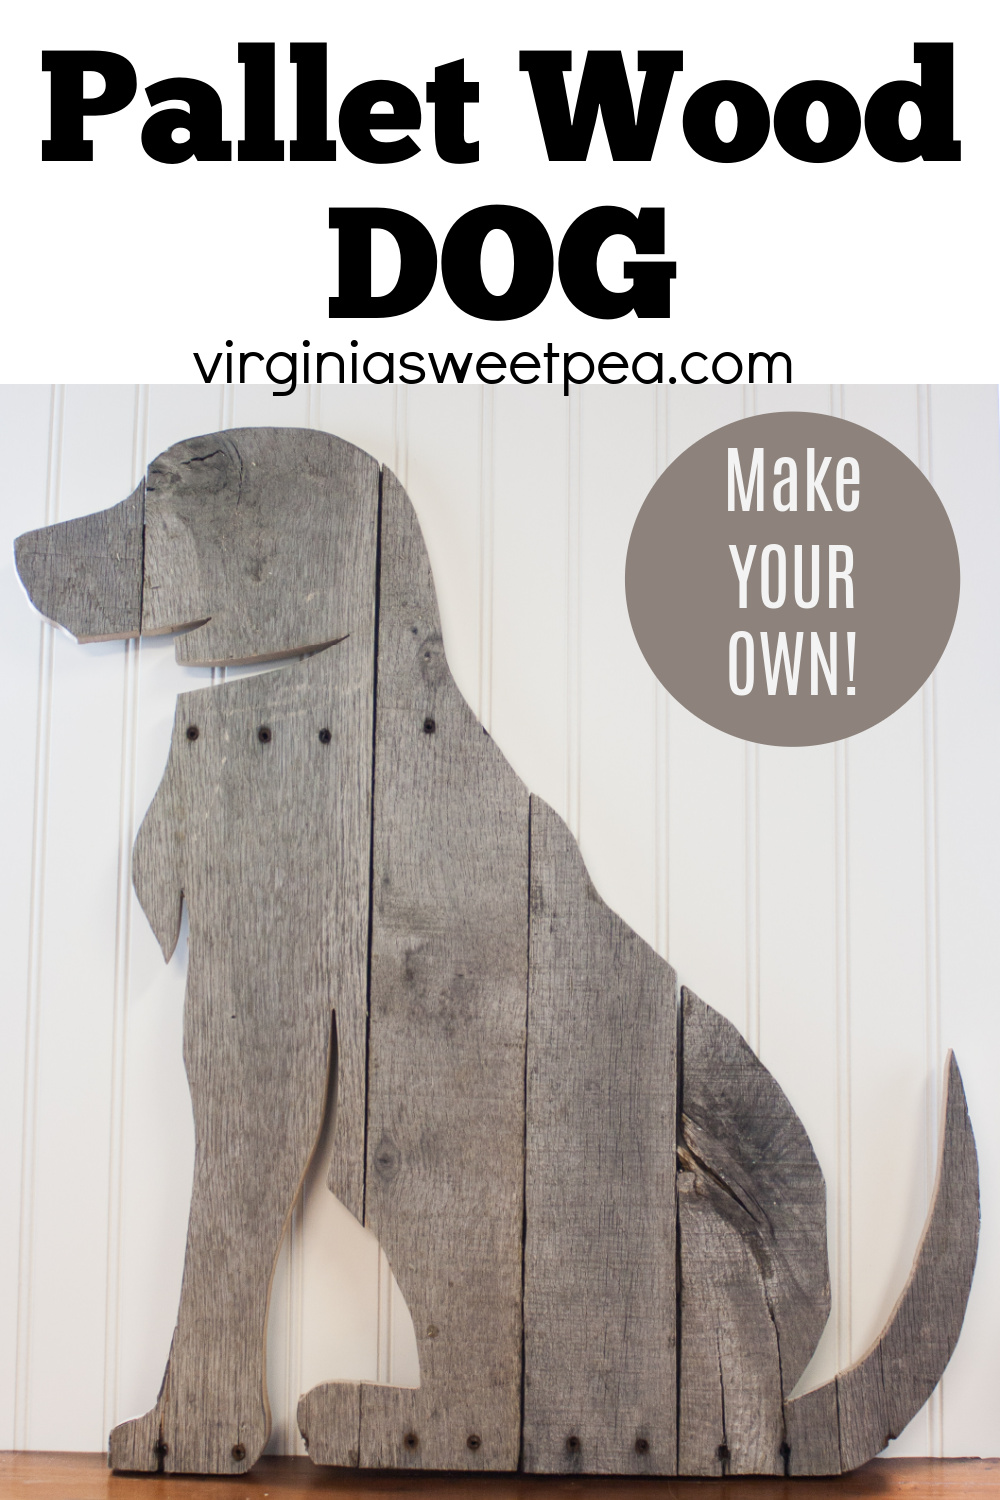 DIY Pallet Wood Dog - Learn how to make a silhouette of your dog using pallet wood.  #palletwood #palletwoodproject #dogsilhouette #palletwooddog via @spaula